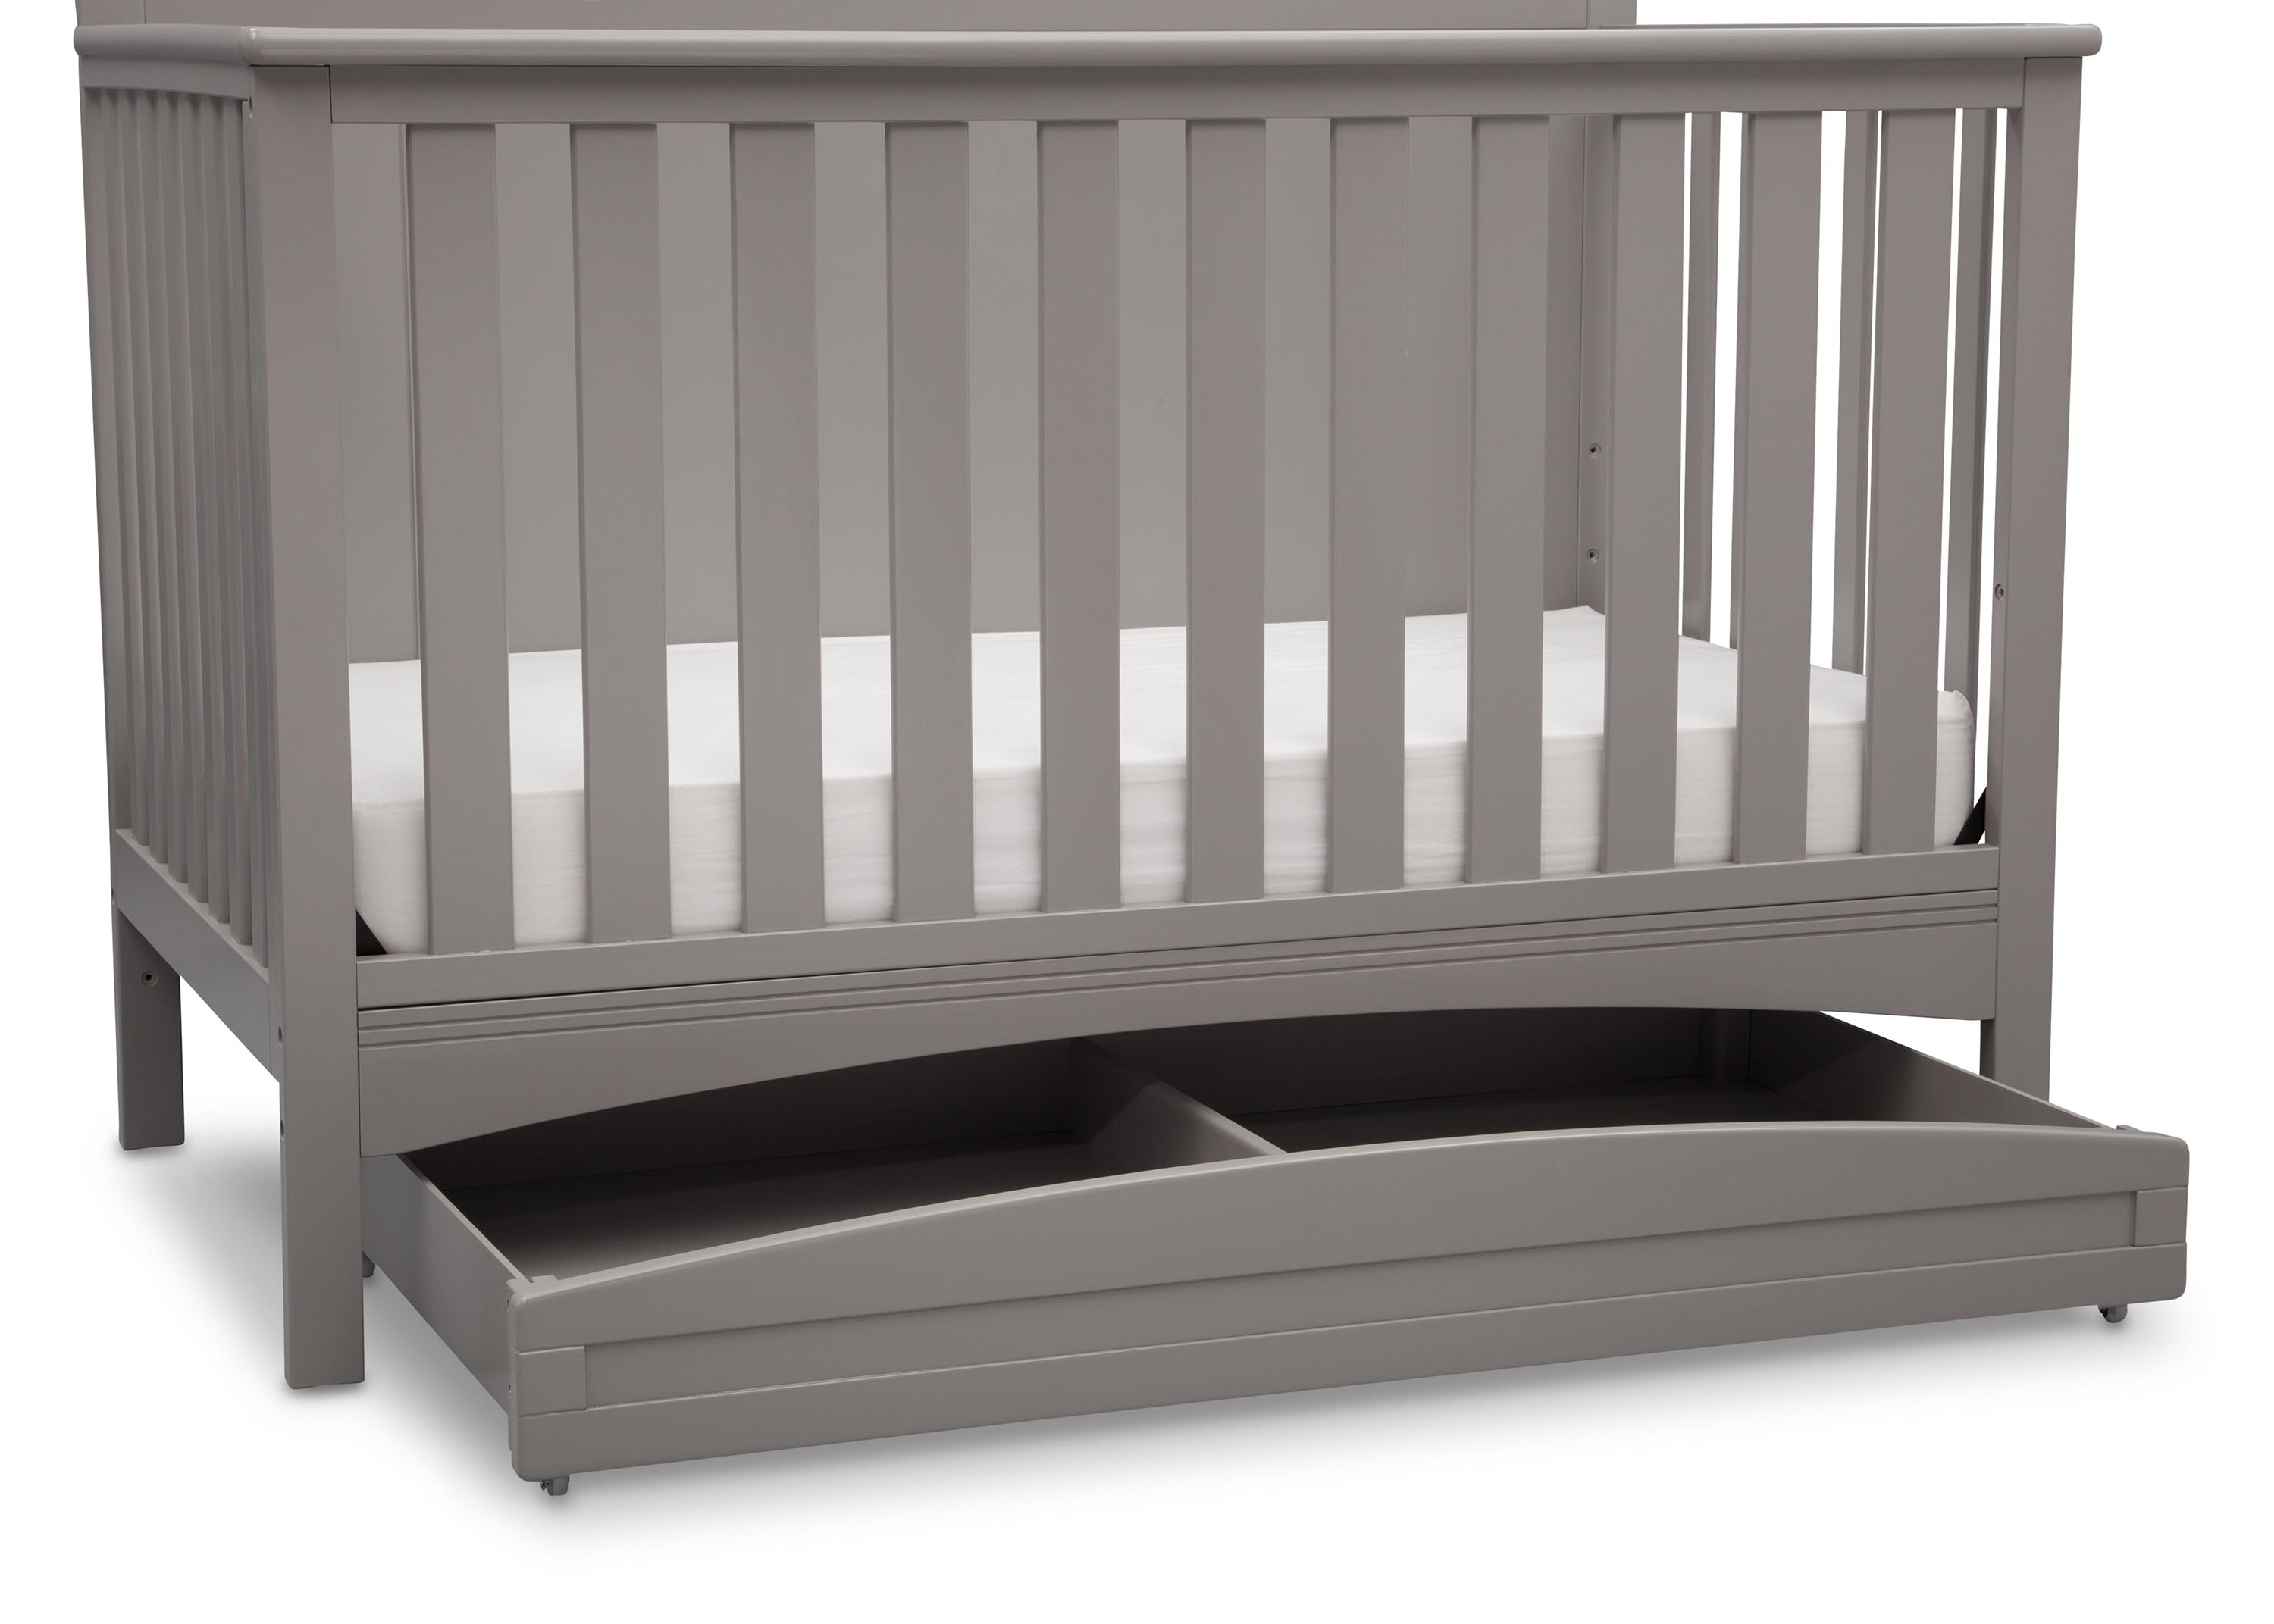 crib trundle bed  creative ideas of baby cribs - trundle nursery storage drawer under bed crib casters